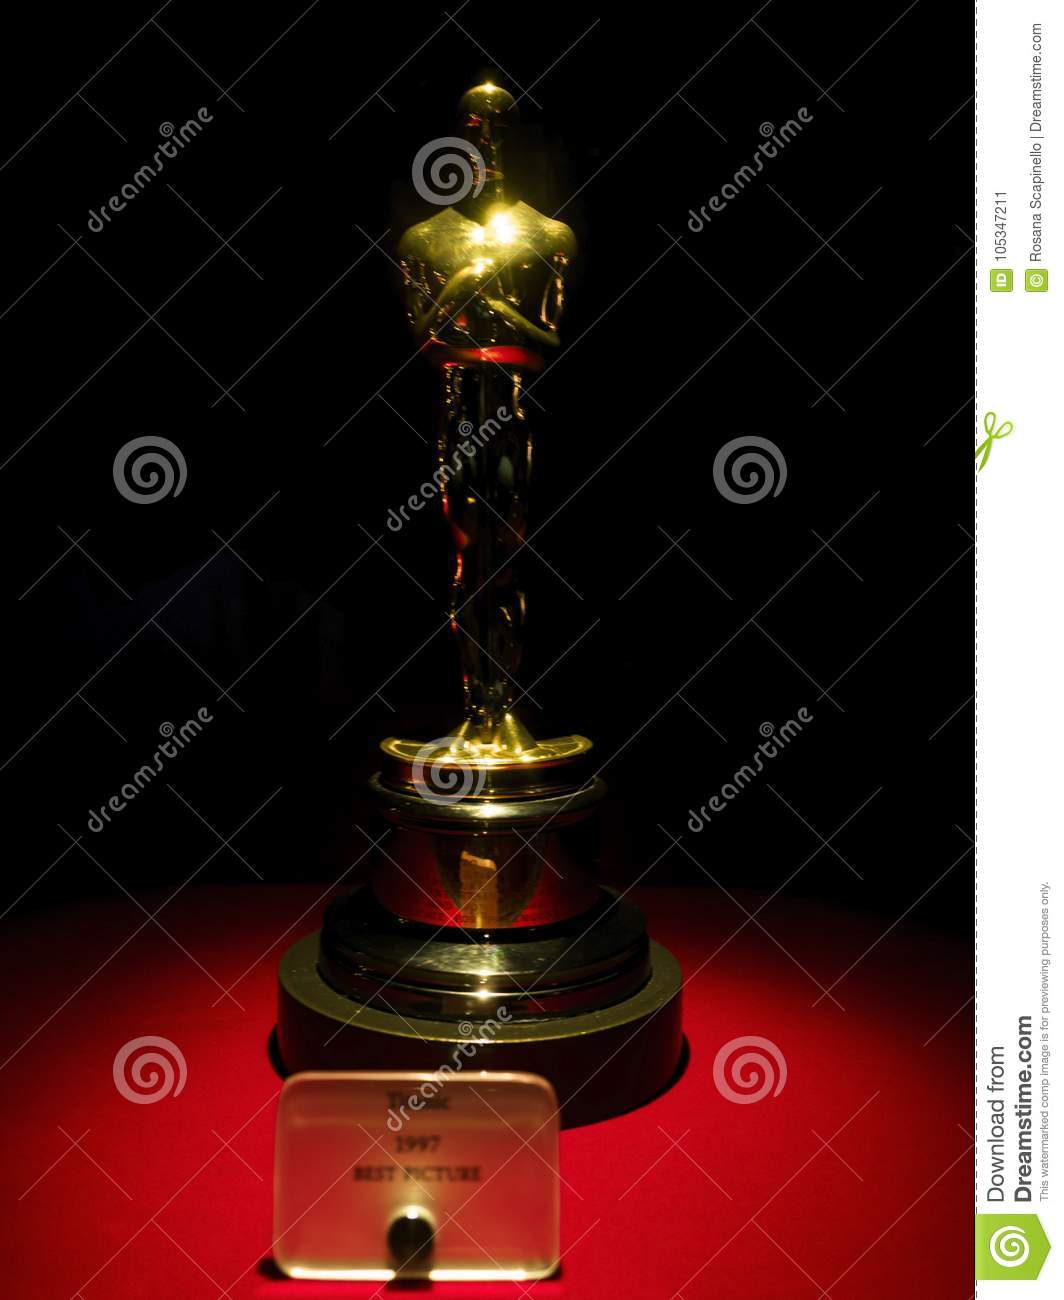 Titanic Oscar for Best Picture 1997 at Paramount Pictures Hollywood Tour on the 14th August, 2017 - Los Angeles, LA, California, C